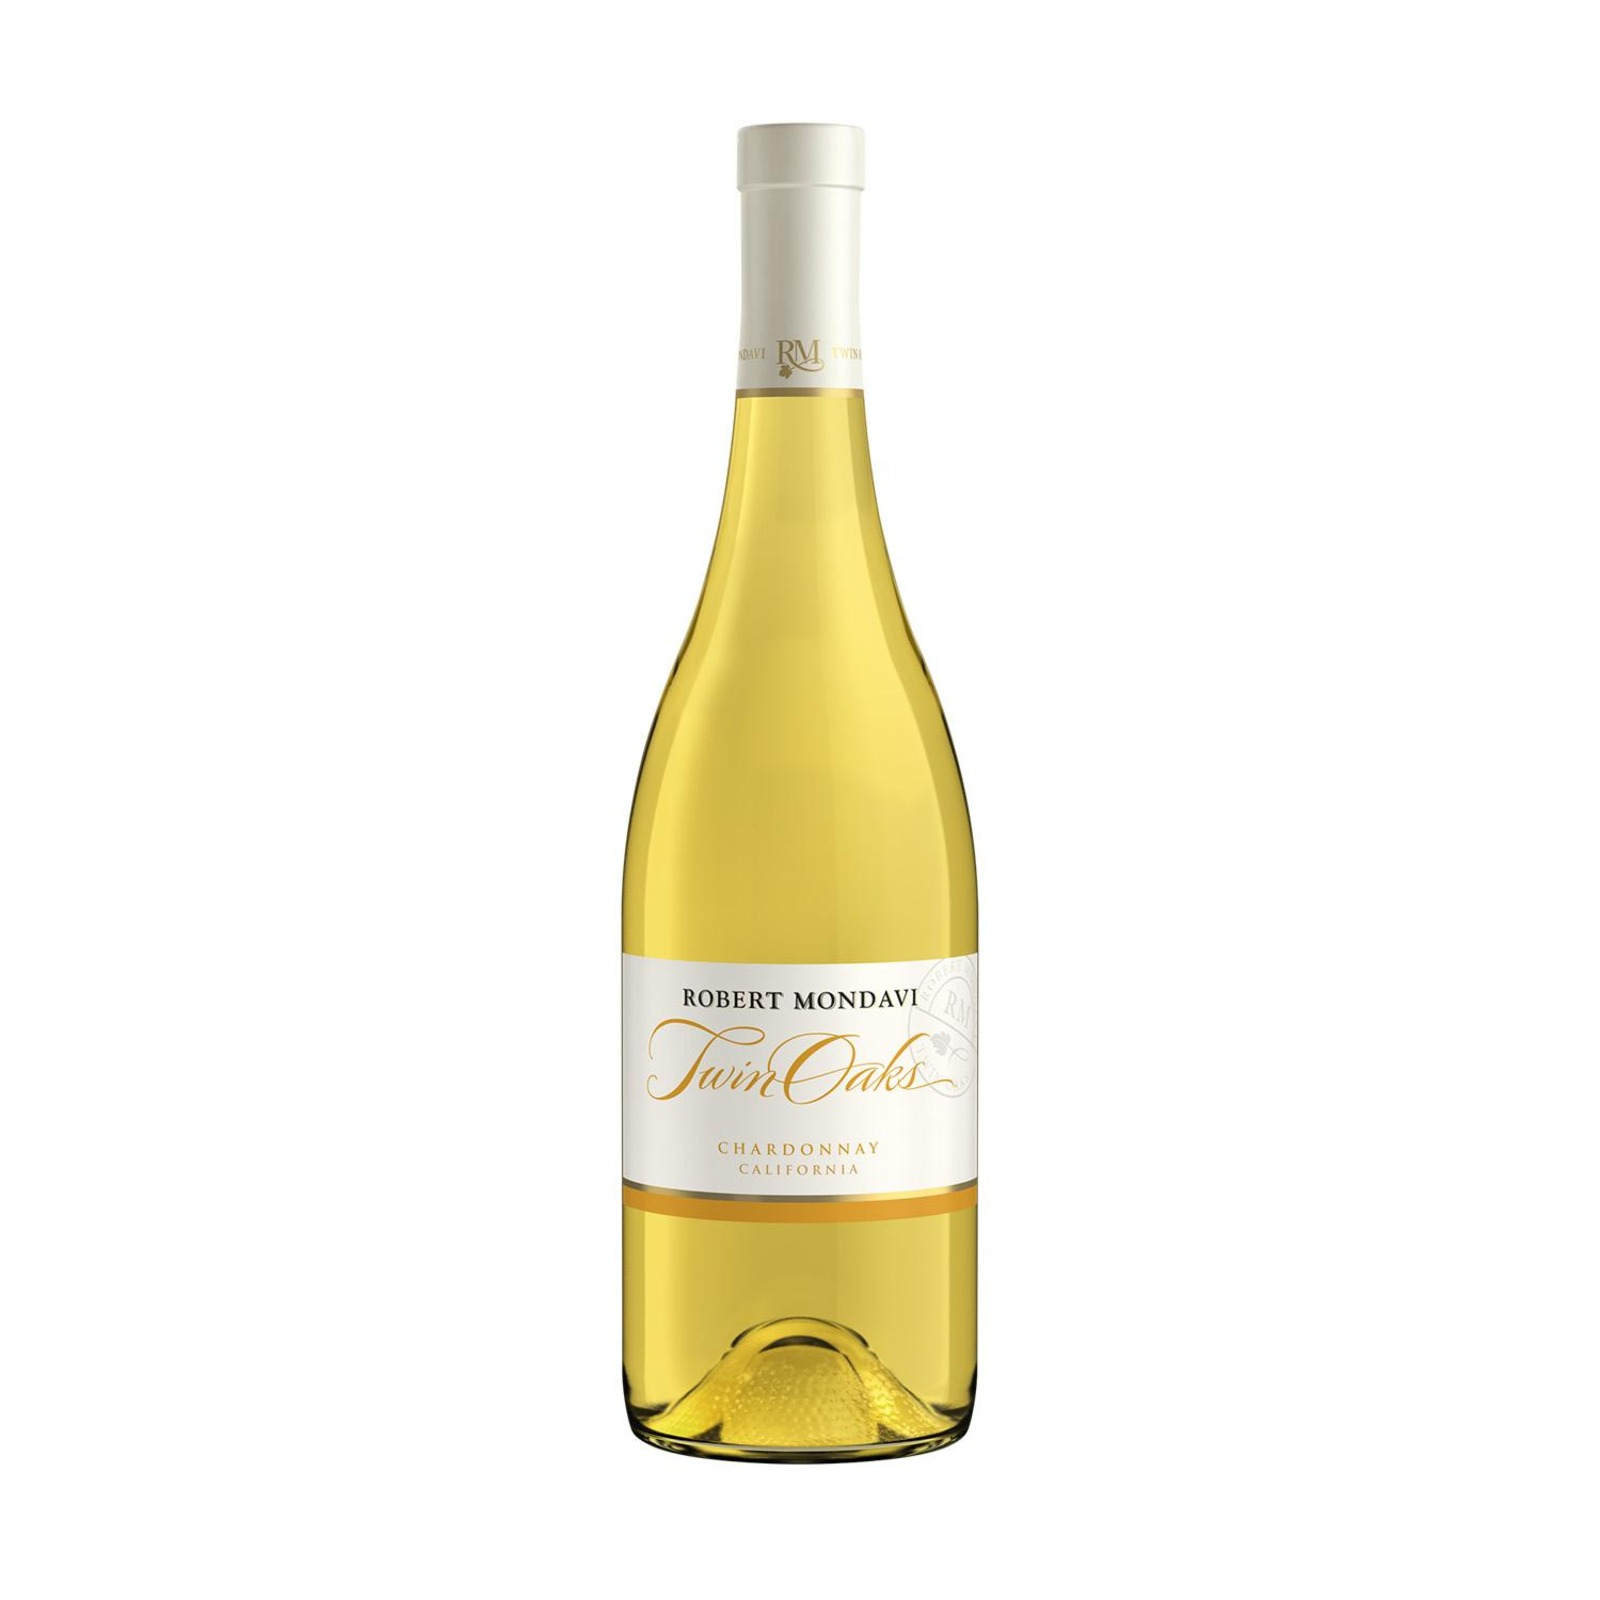 Robert Mondavi Twin Oaks Chardonnay-By Culina